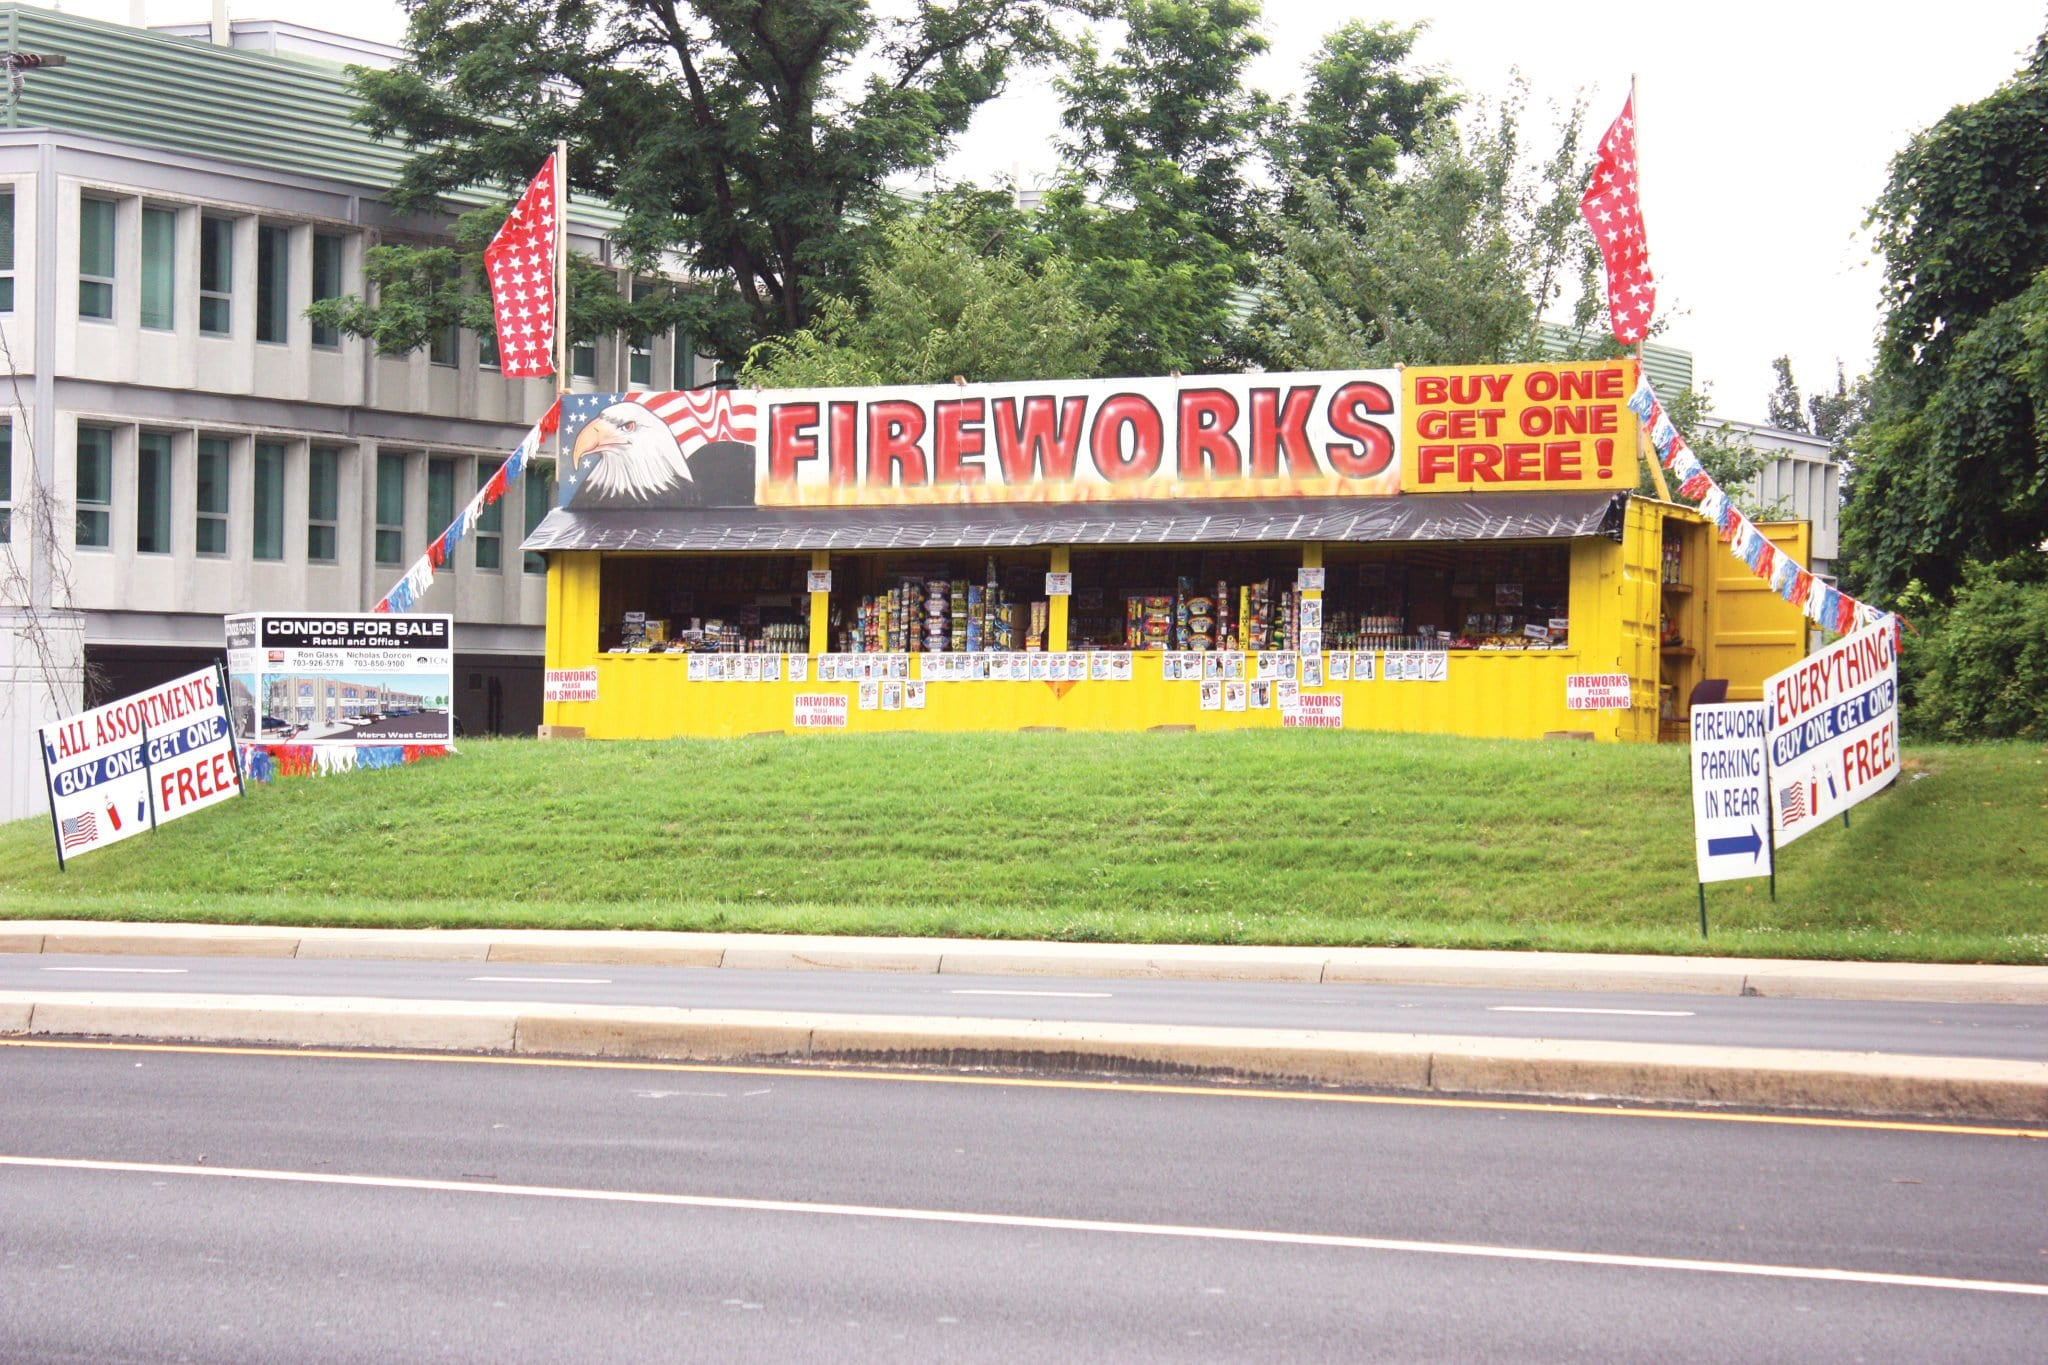 "THIS FAMILIAR FIREWORKS STAND has been set up on Route 7 just outside the city limits of Falls Church for many years. But this year, with F.C. now having its own fire marshal, after years of contracting that service from Arlington County, a stiff notice was sent out from City Hall last week warning that ""possession, manufacture, storage, sale and unauthorized use of fireworks are illegal in the City of Falls Church. This includes all consumer fireworks."" Illegal are firecrackers, torpedoes, skyrockets, Roman candles, sparklers or other devices of like construction and any other devices containing any explosive or flammable compound. Violators are subject to prosecution of a Class 1 misdemeanor, as well as having fireworks seized. (Photo: News-Press)"